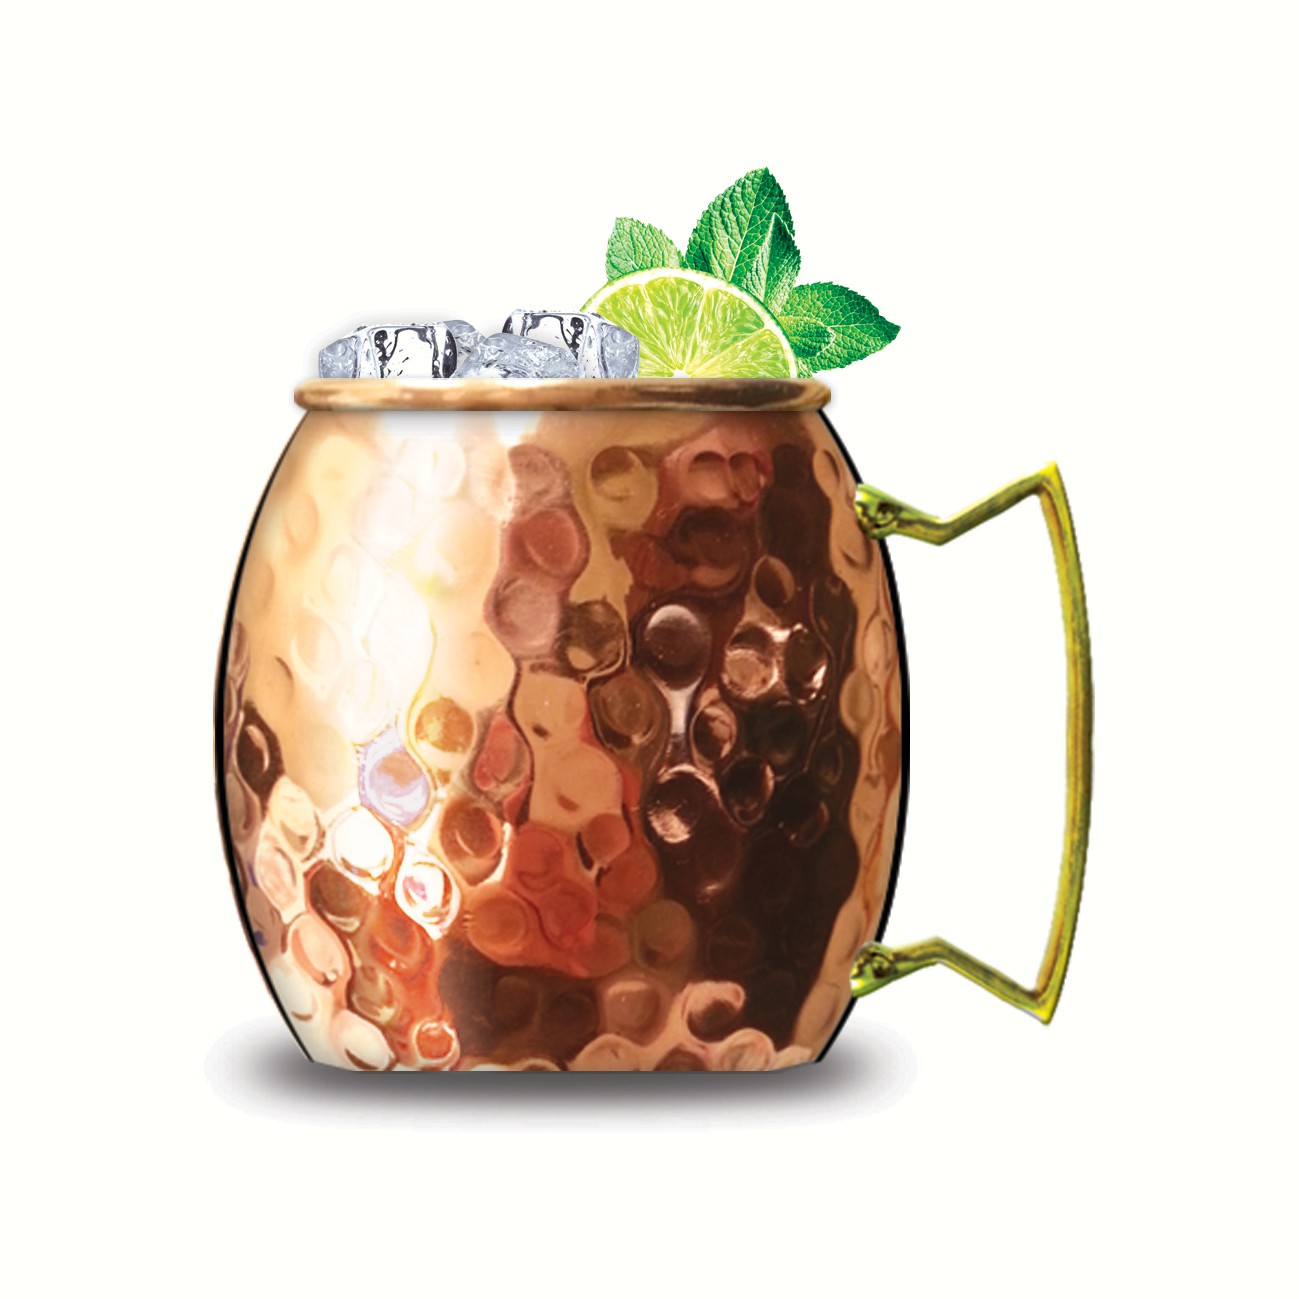 Moscow Mule Copper Mug with Brass Handle 20 oz